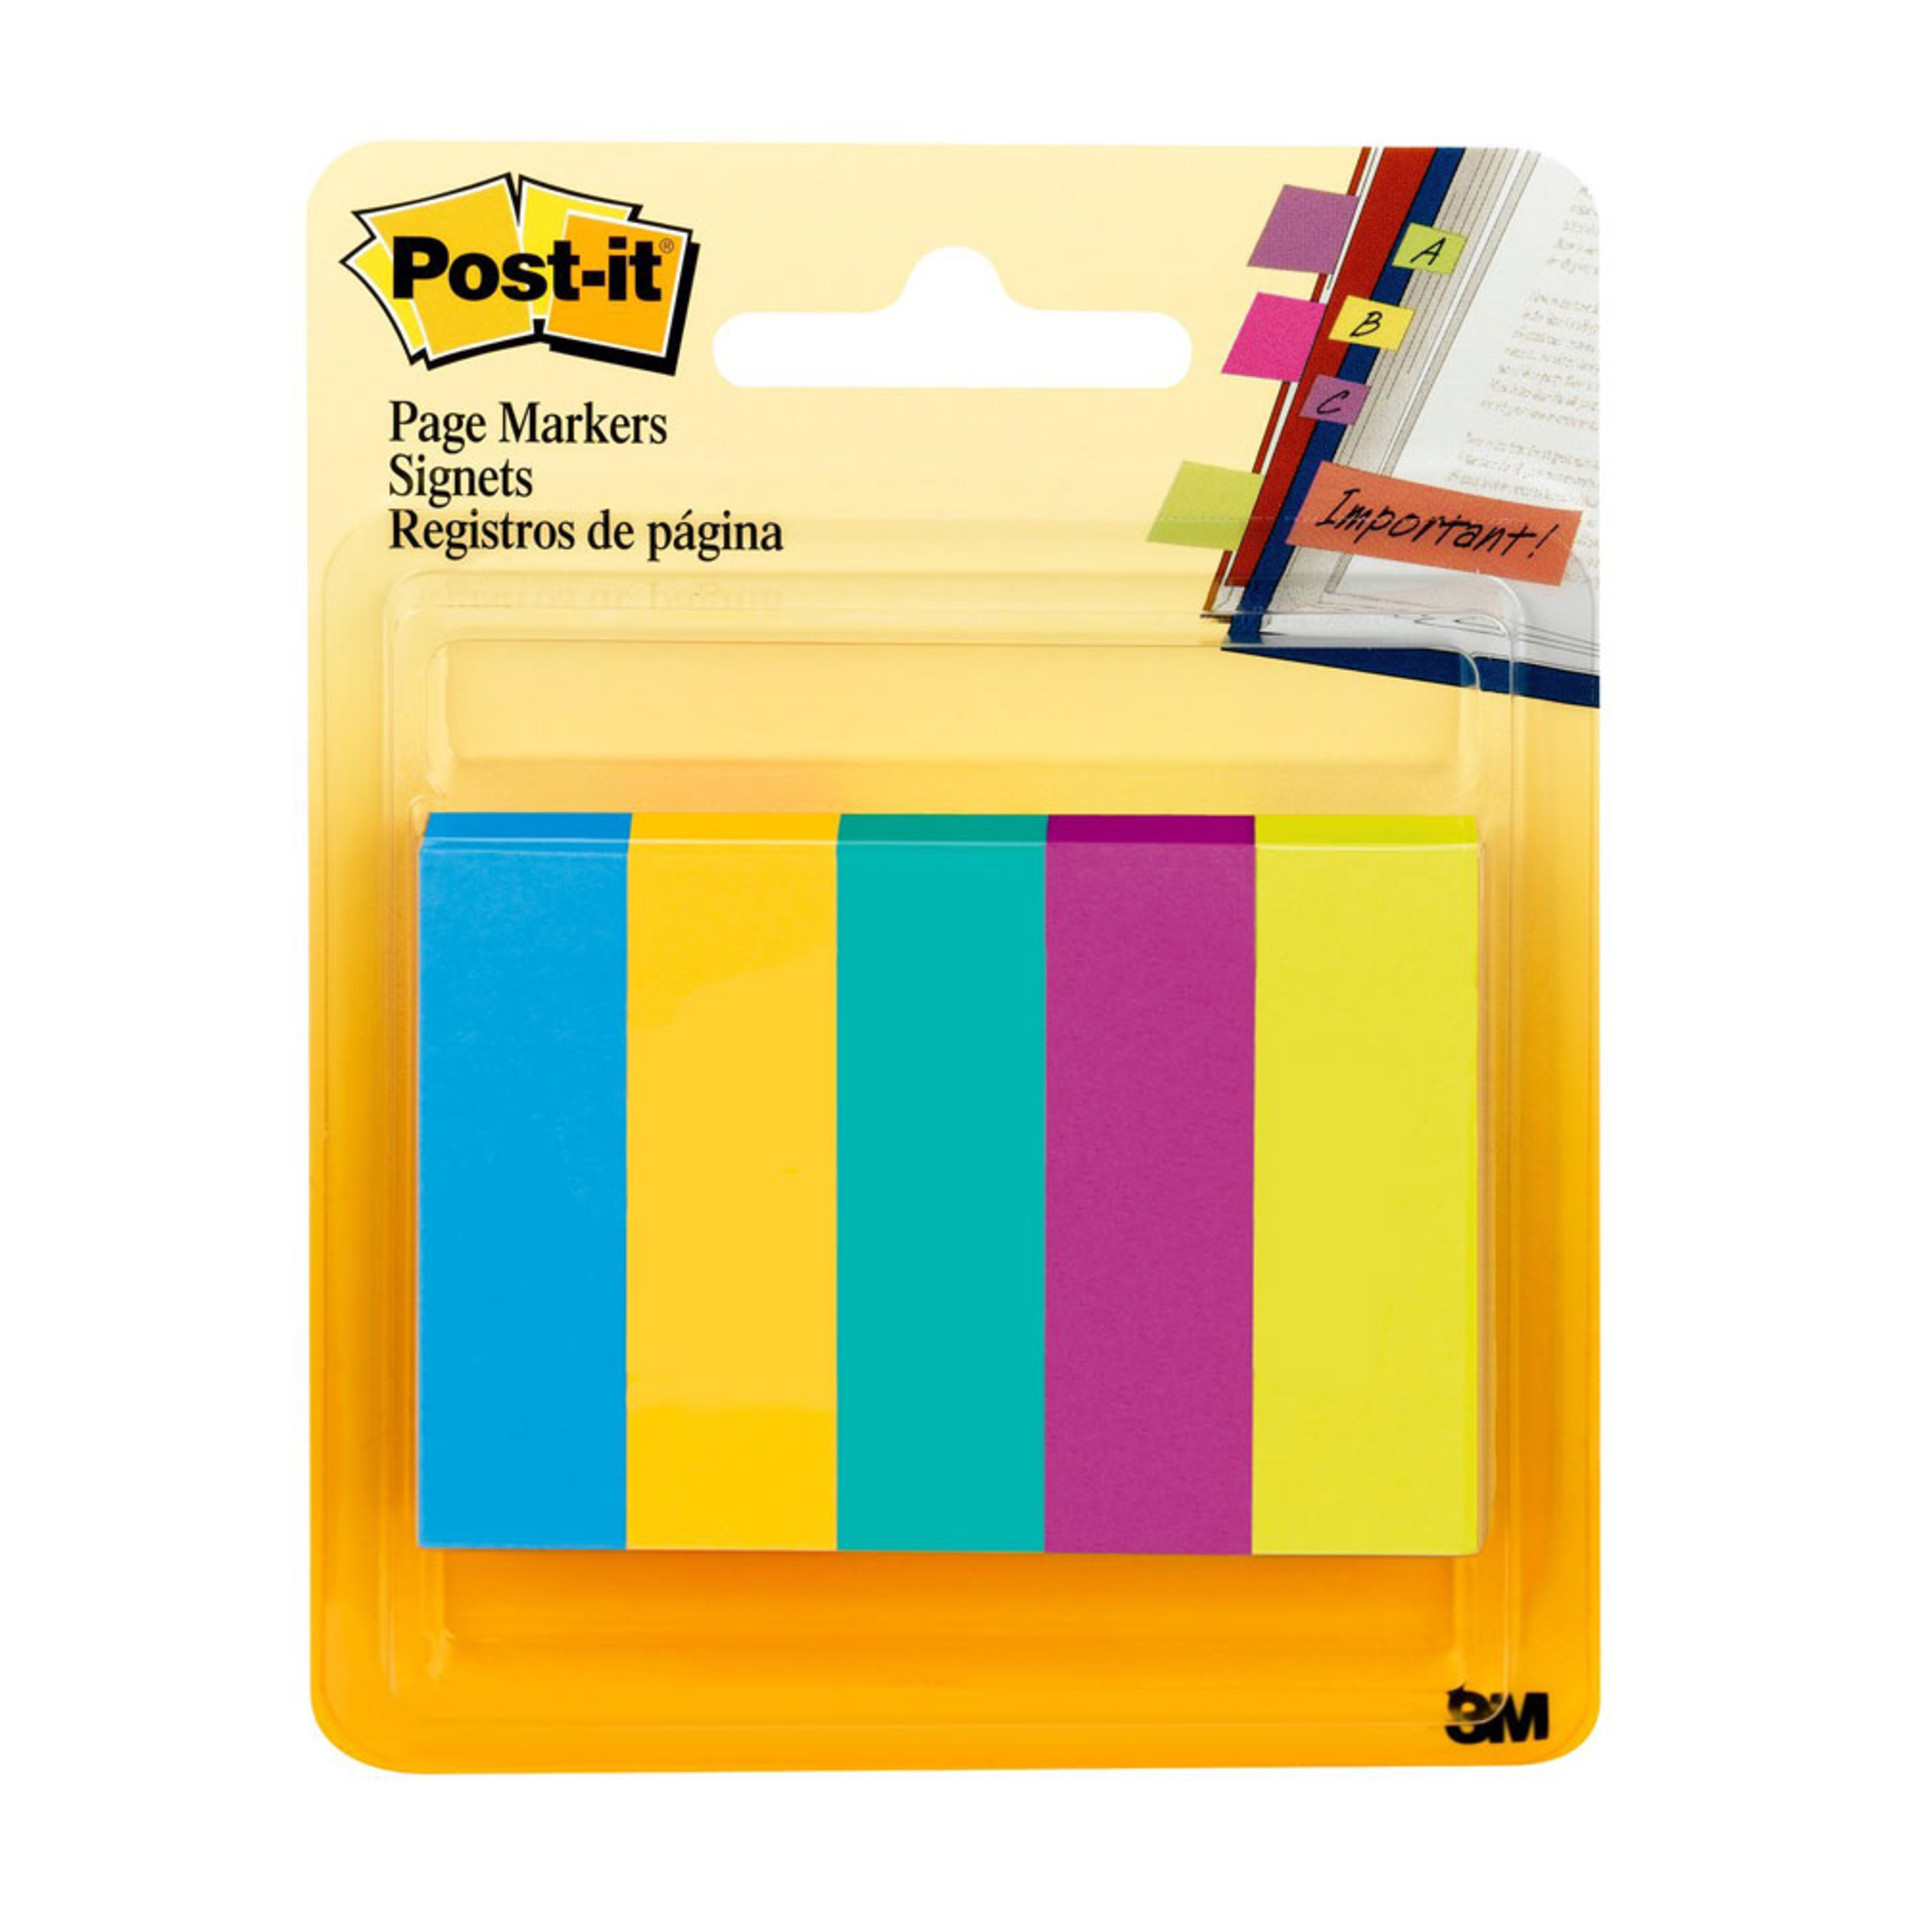 """Post-it Five Ultra Colors 0.5""""x1.75"""" Page Markers 500ct"""